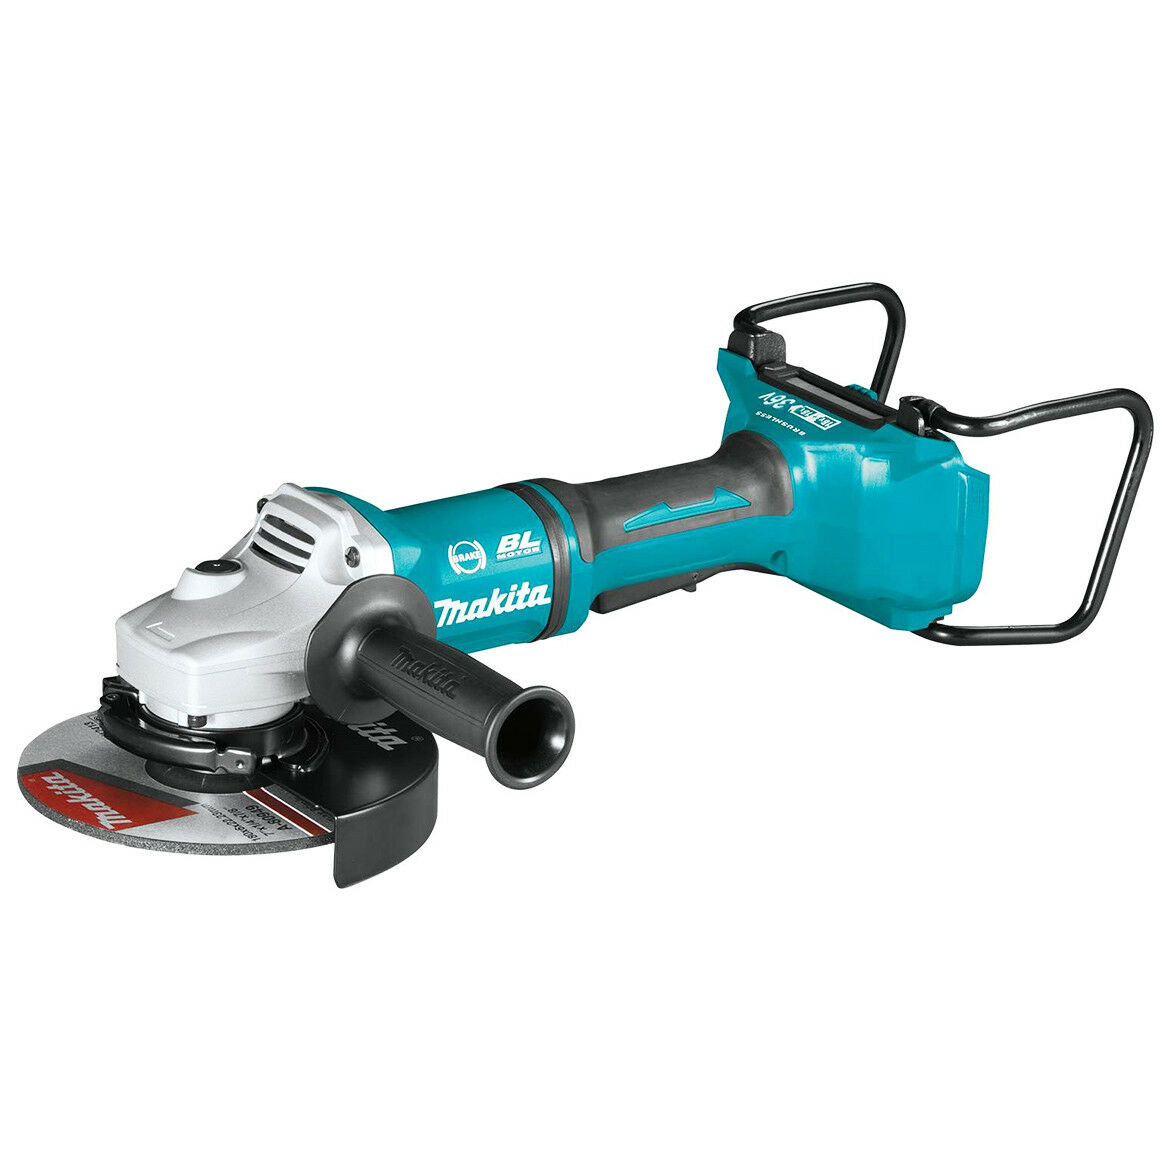 Makita XAG12Z1 36-Volt LXT 7-Inch Paddle Switch Cut-Off/Angle Grinder -Bare Tool